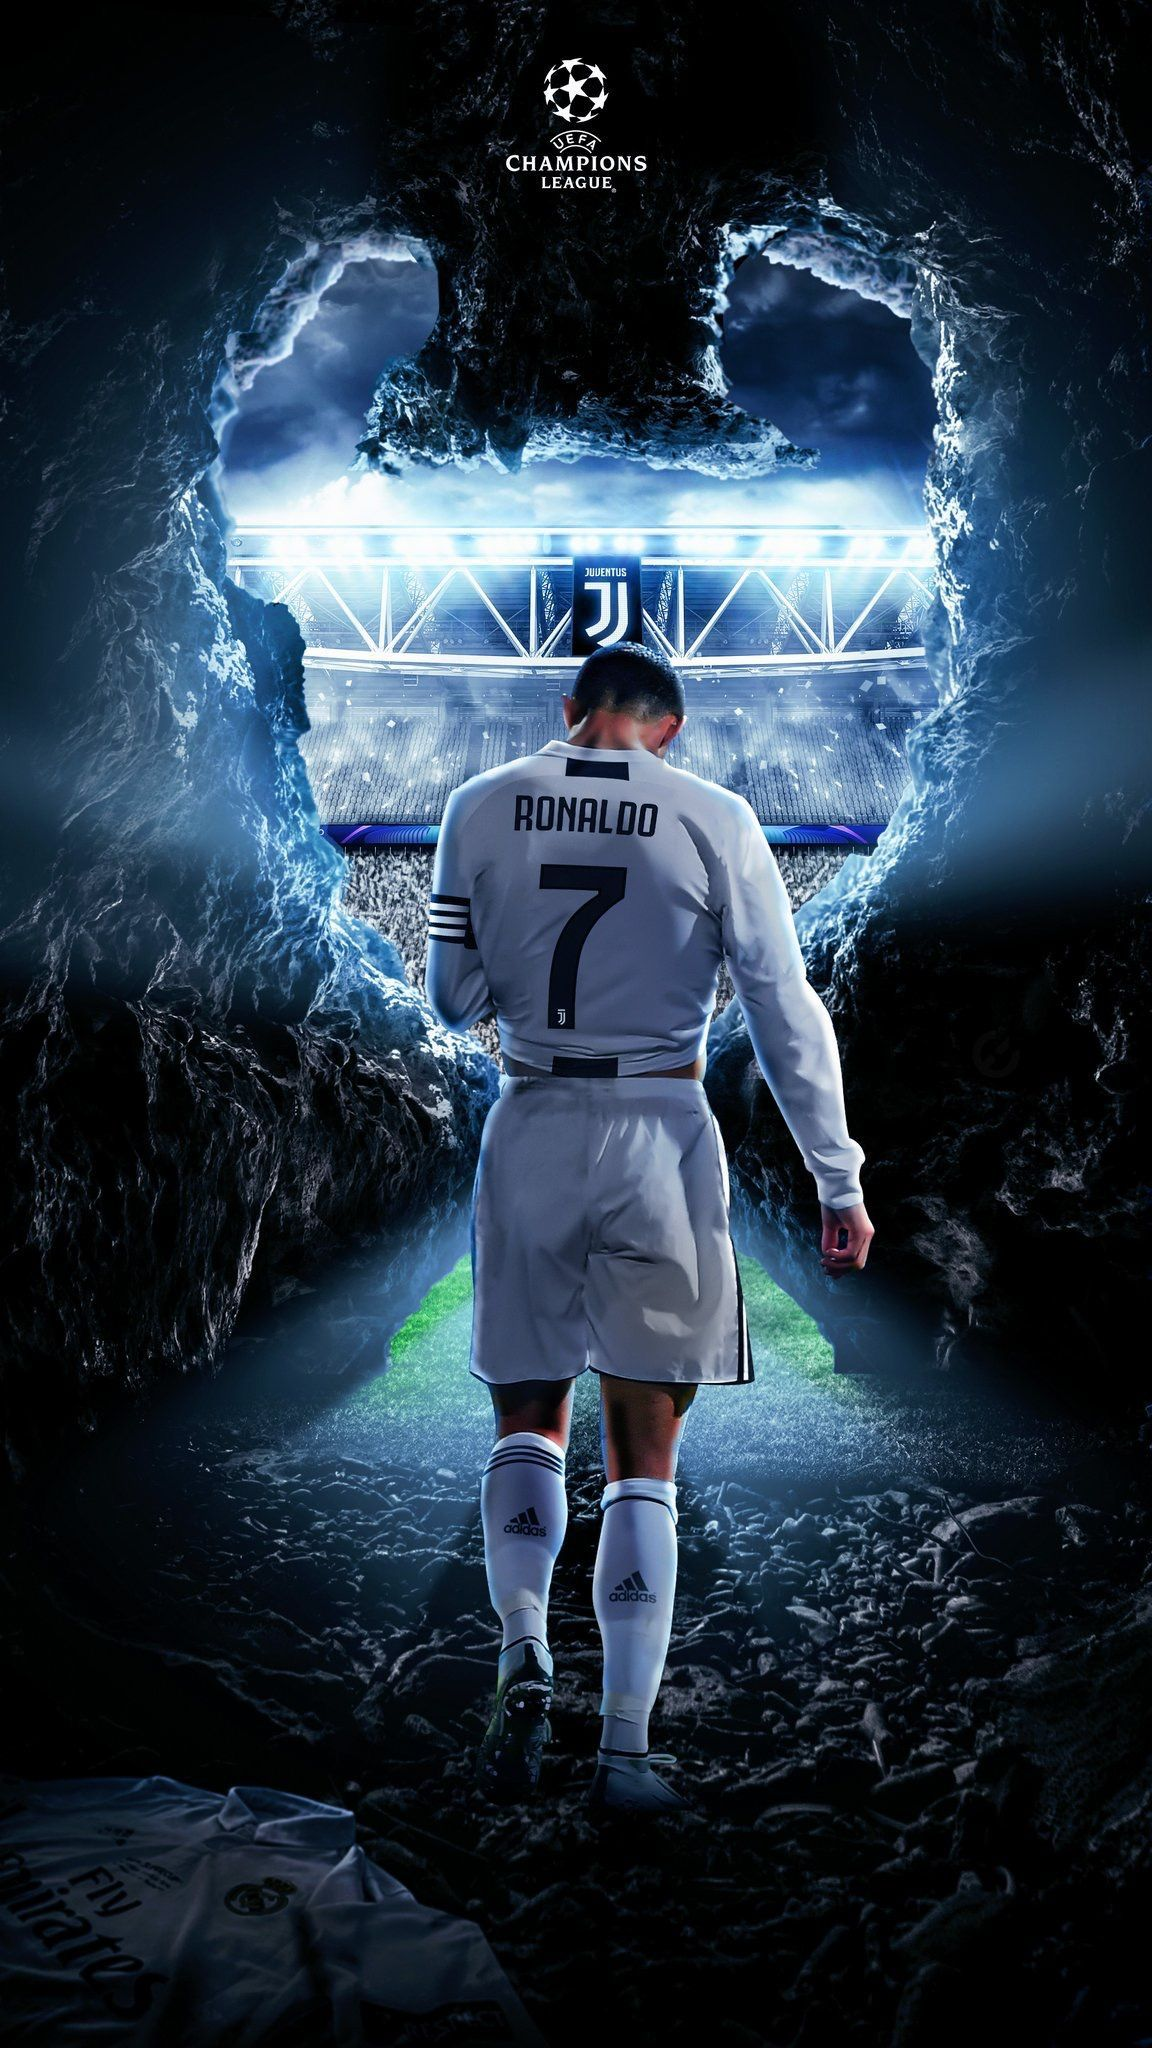 THE BEST 19 CRISTIANO RONALDO WALLPAPER PHOTOS HD 2020 CR7 1152x2048